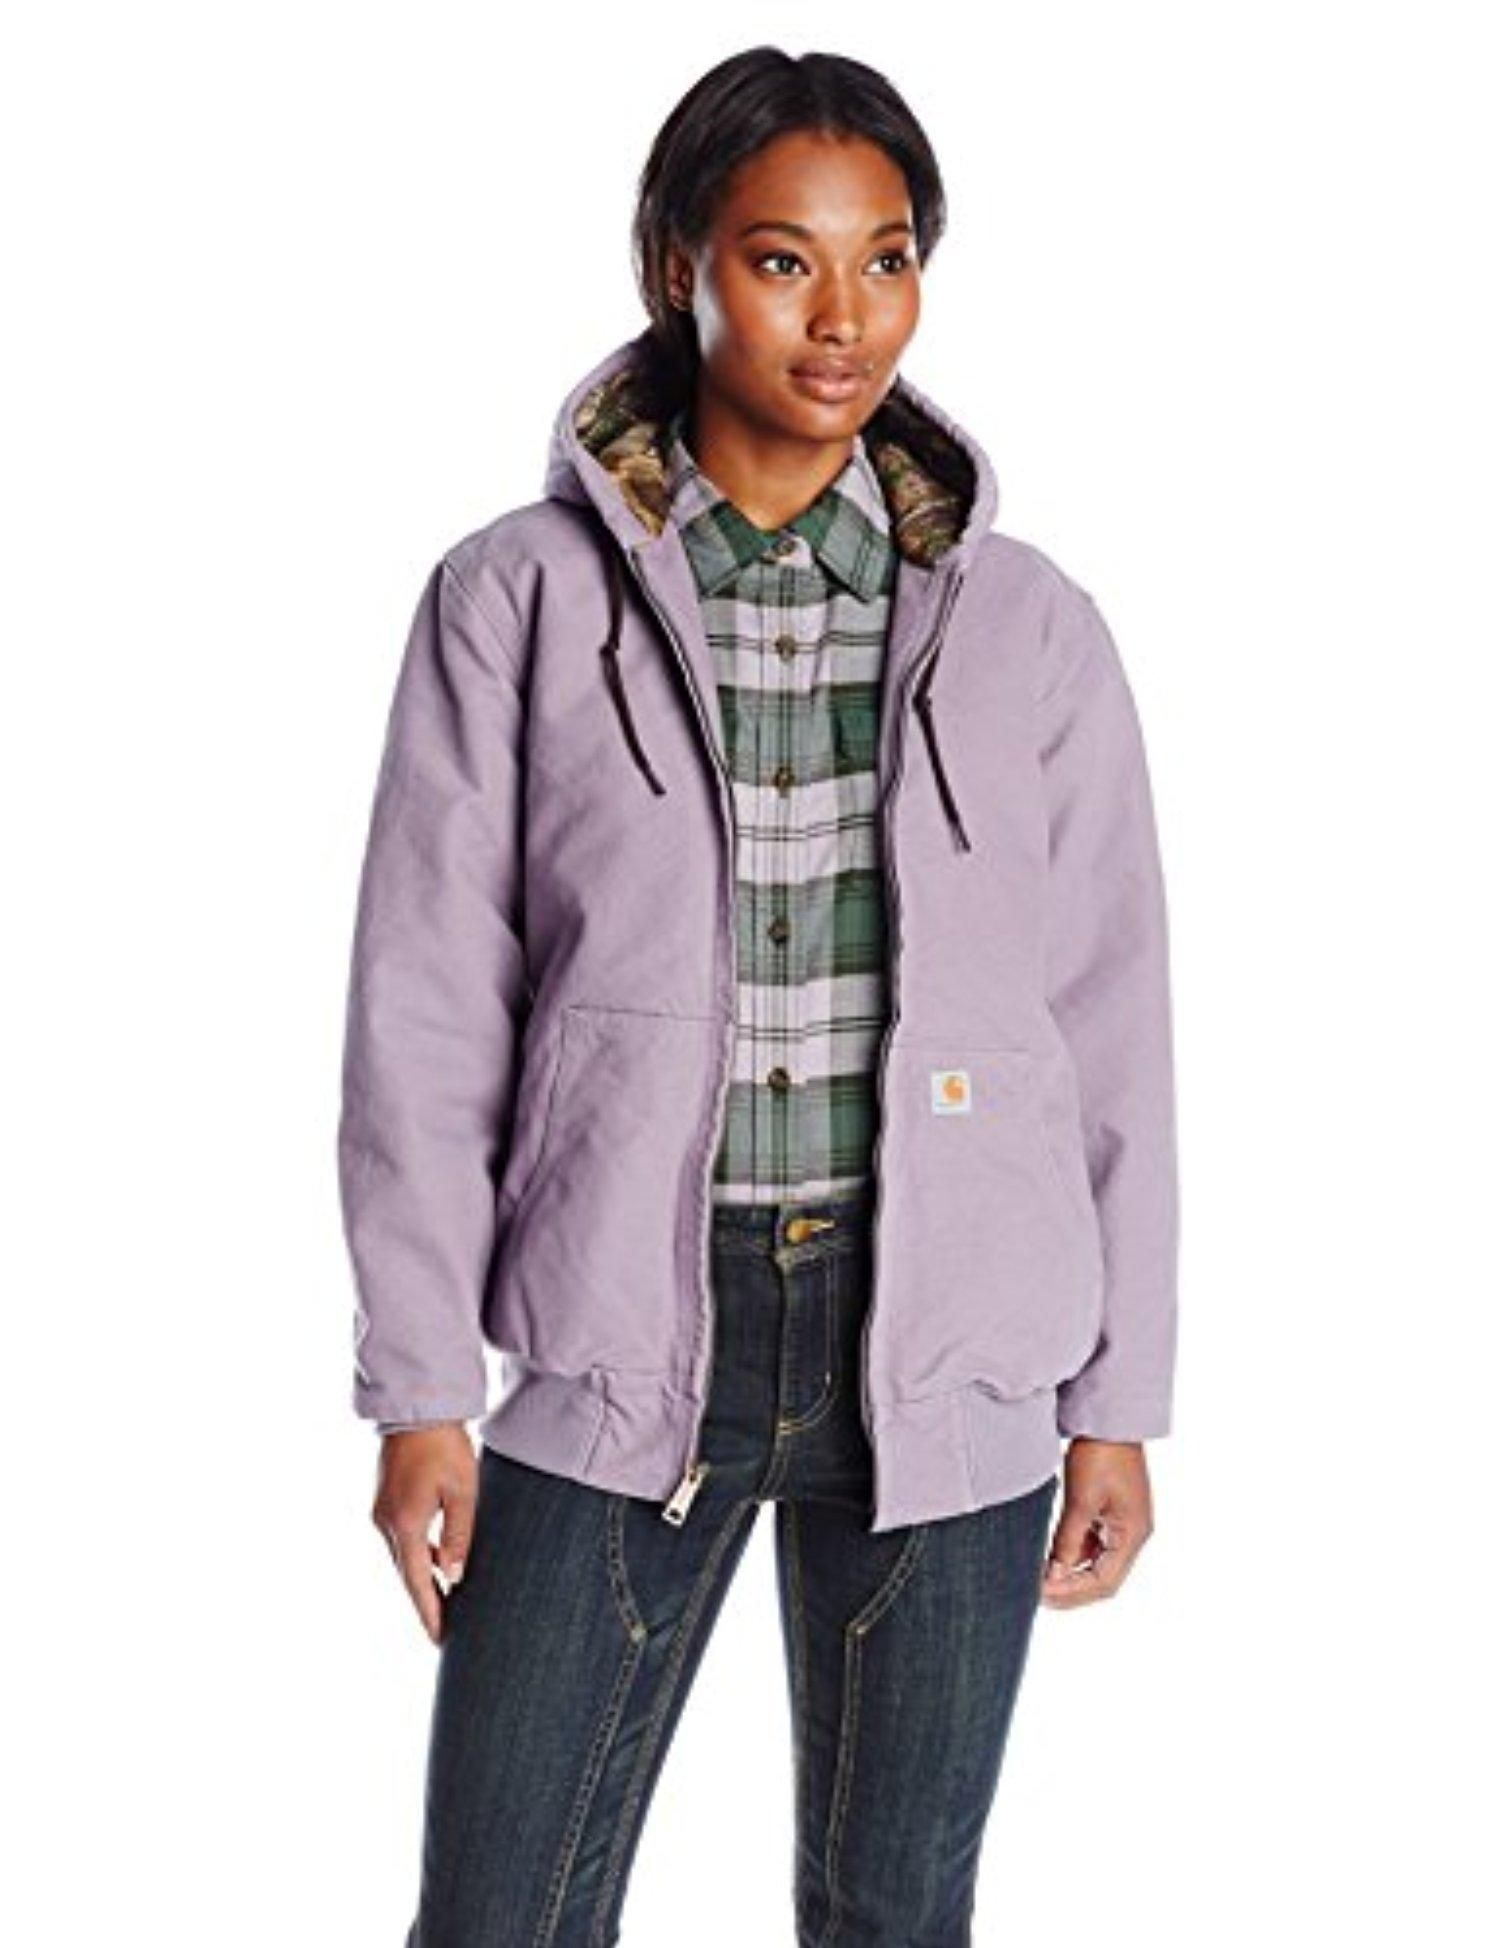 9a5f50a7b0544 Carhartt Women's Sandstone Active Jacket Camo Lined, Purple Sage, Large -  Brought to you by Avarsha.com